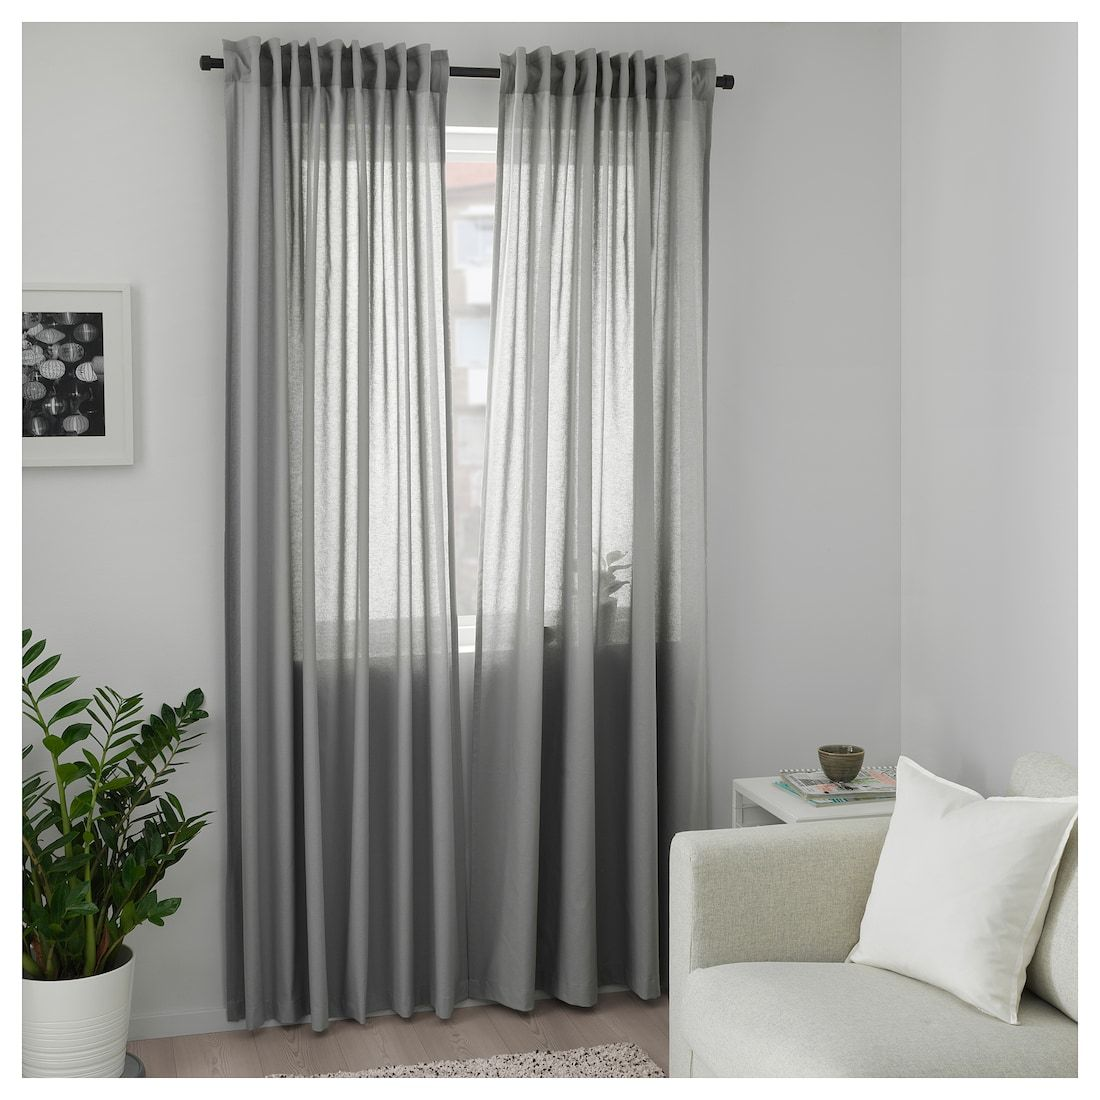 Annalouisa Curtains 1 Pair Gray 57x98 Ikea Living Room Decor Curtains Curtains Curtains Living Room